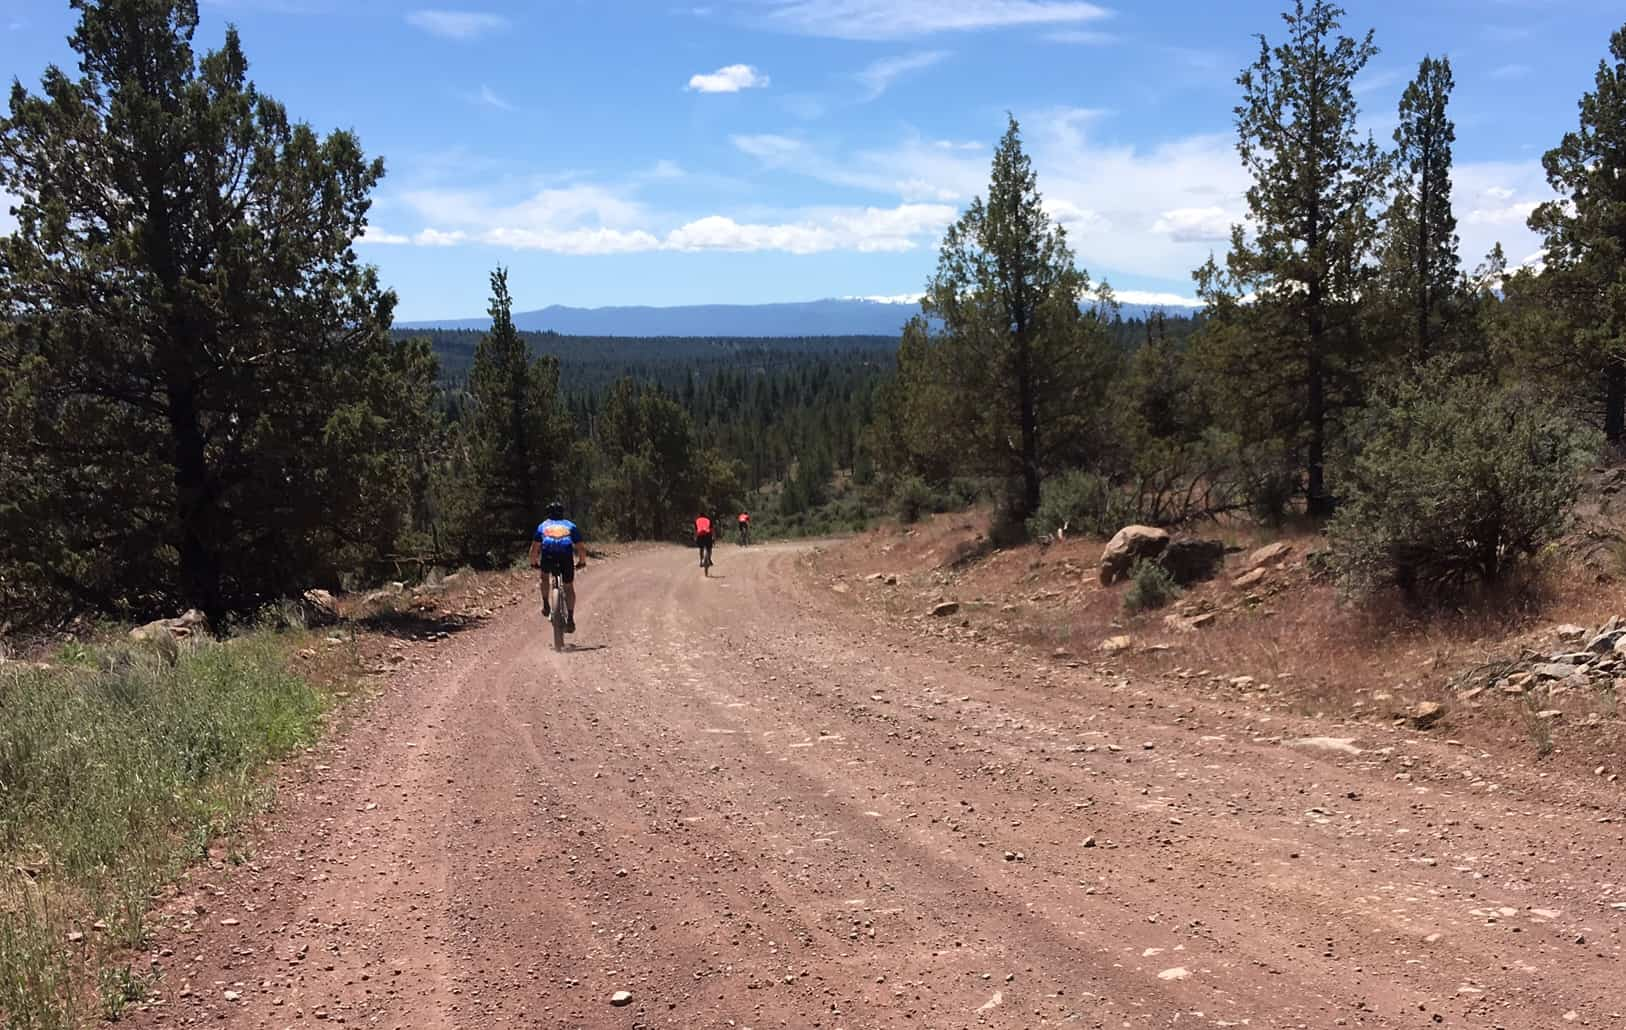 Good quality gravel grinding on forest road 1393 by Sisters, Oregon